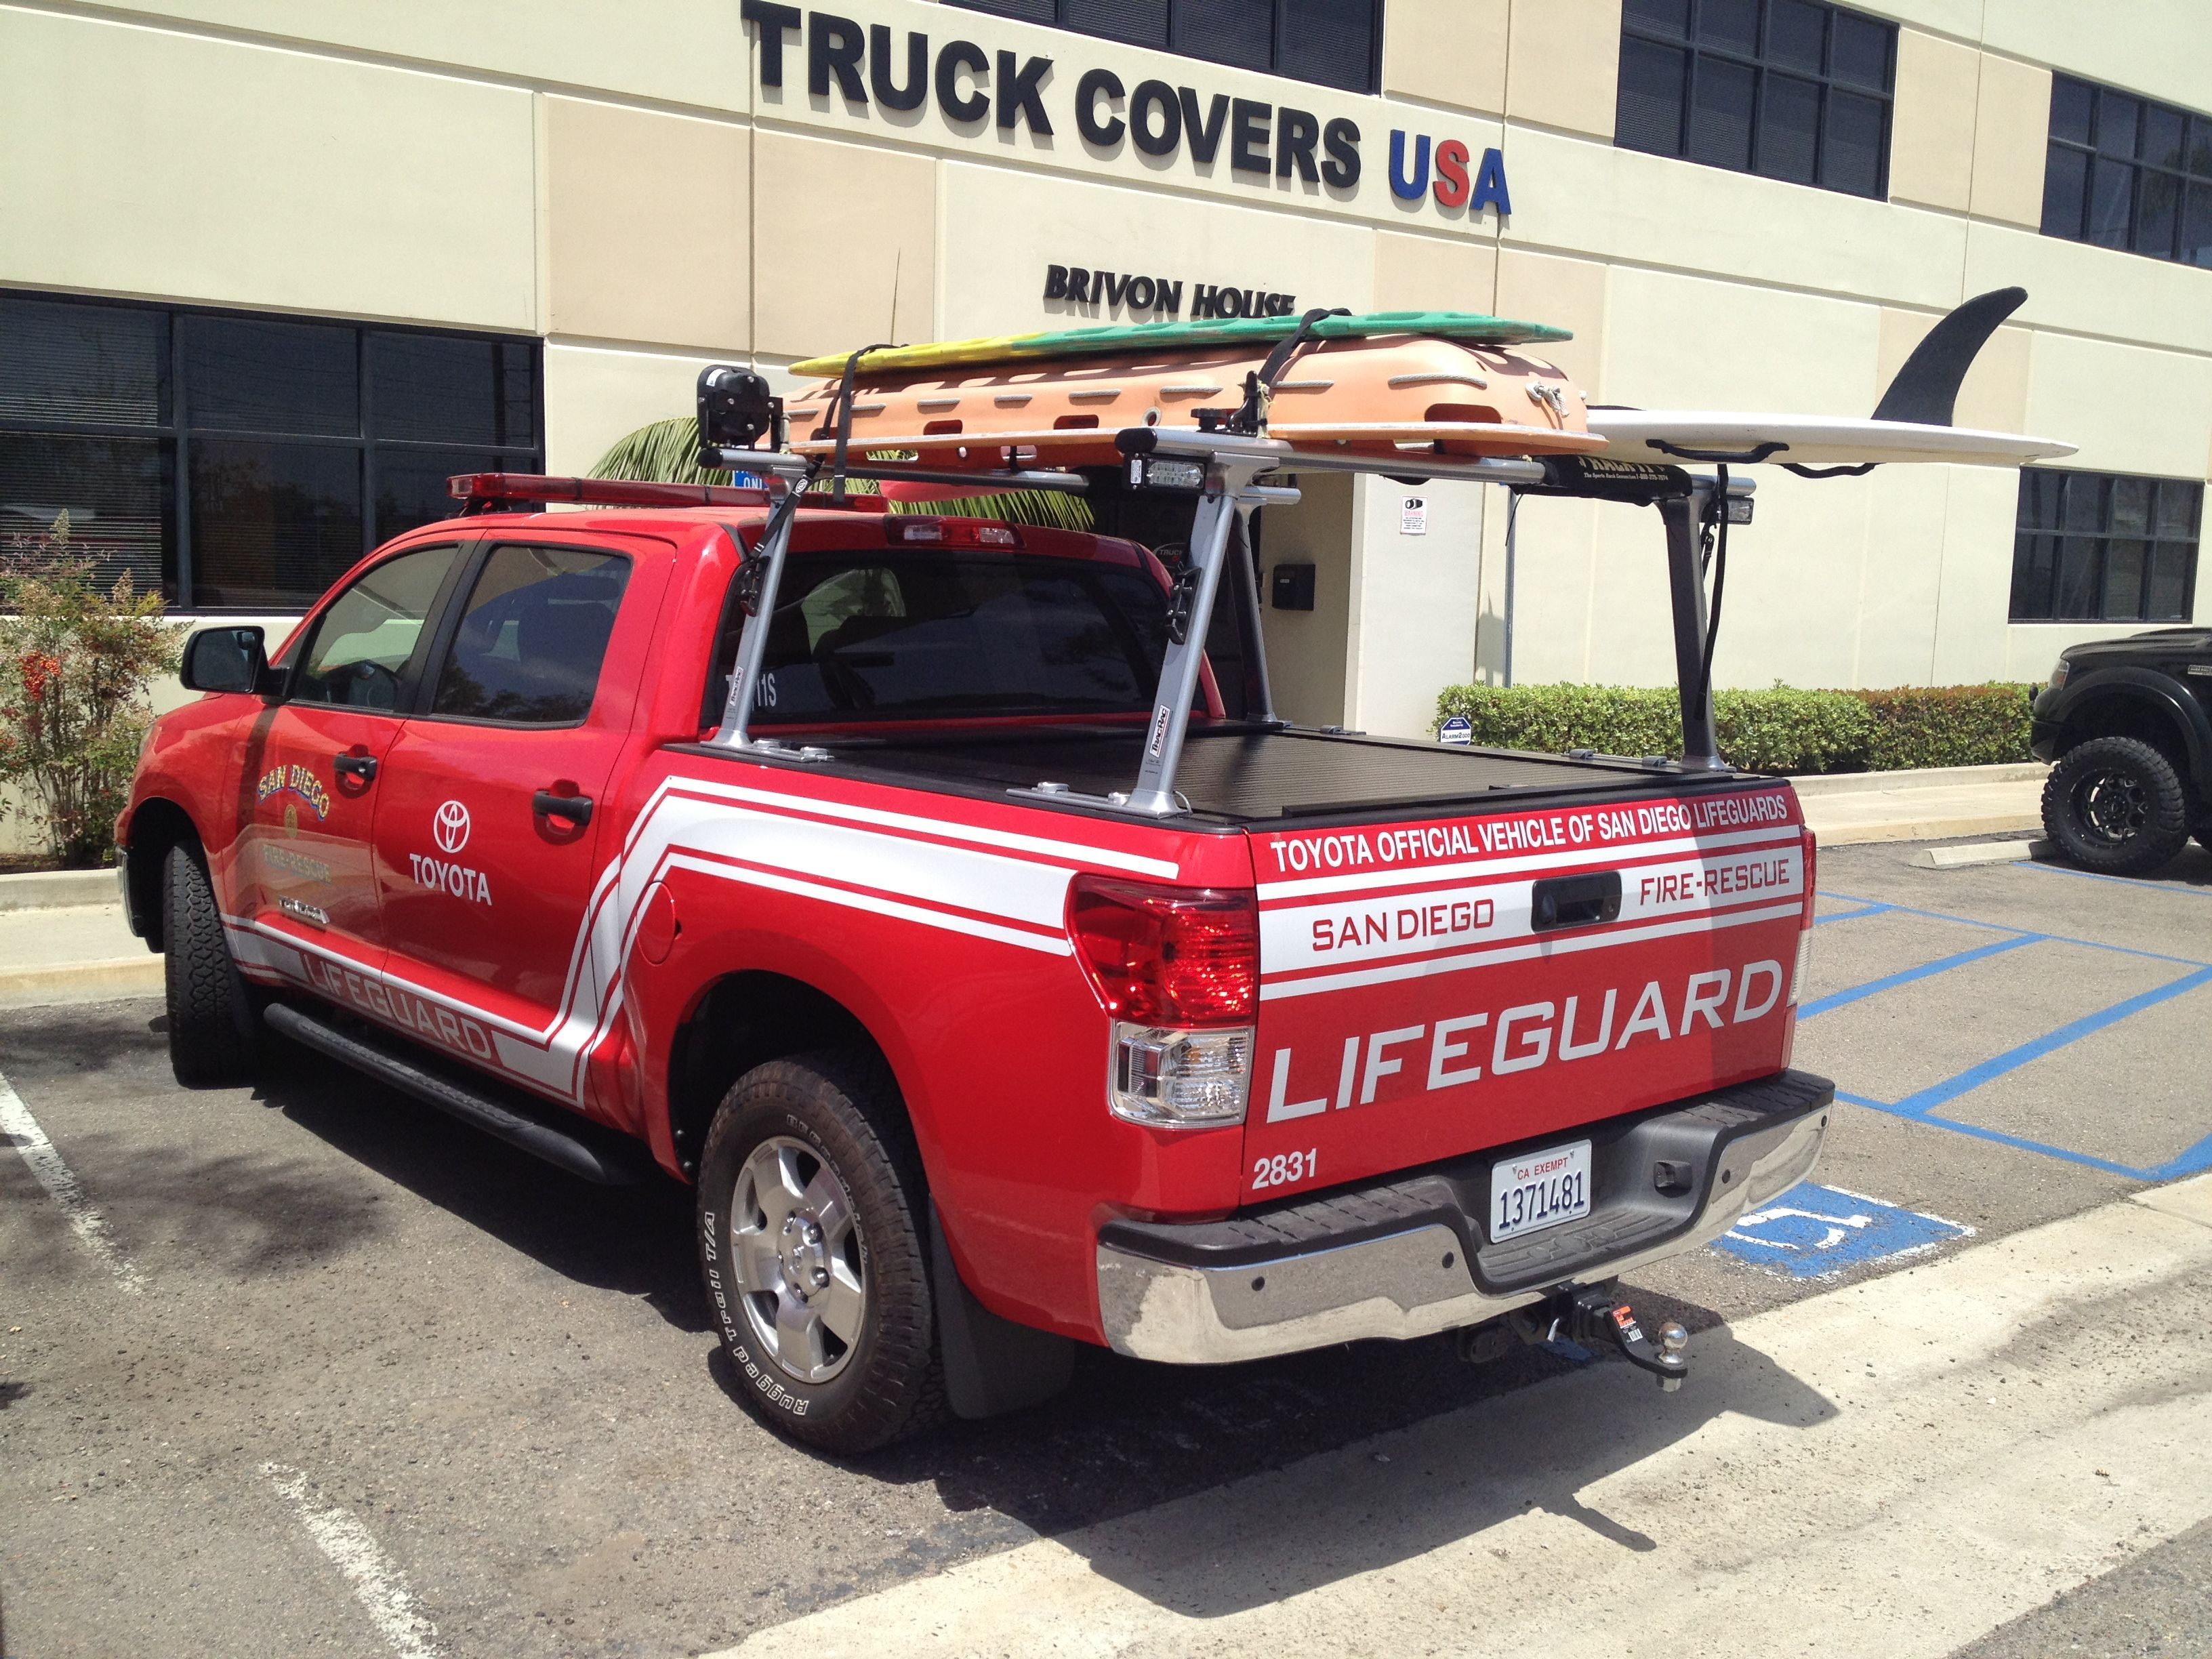 San Diego Fire & Rescuse Life Guards Emergency